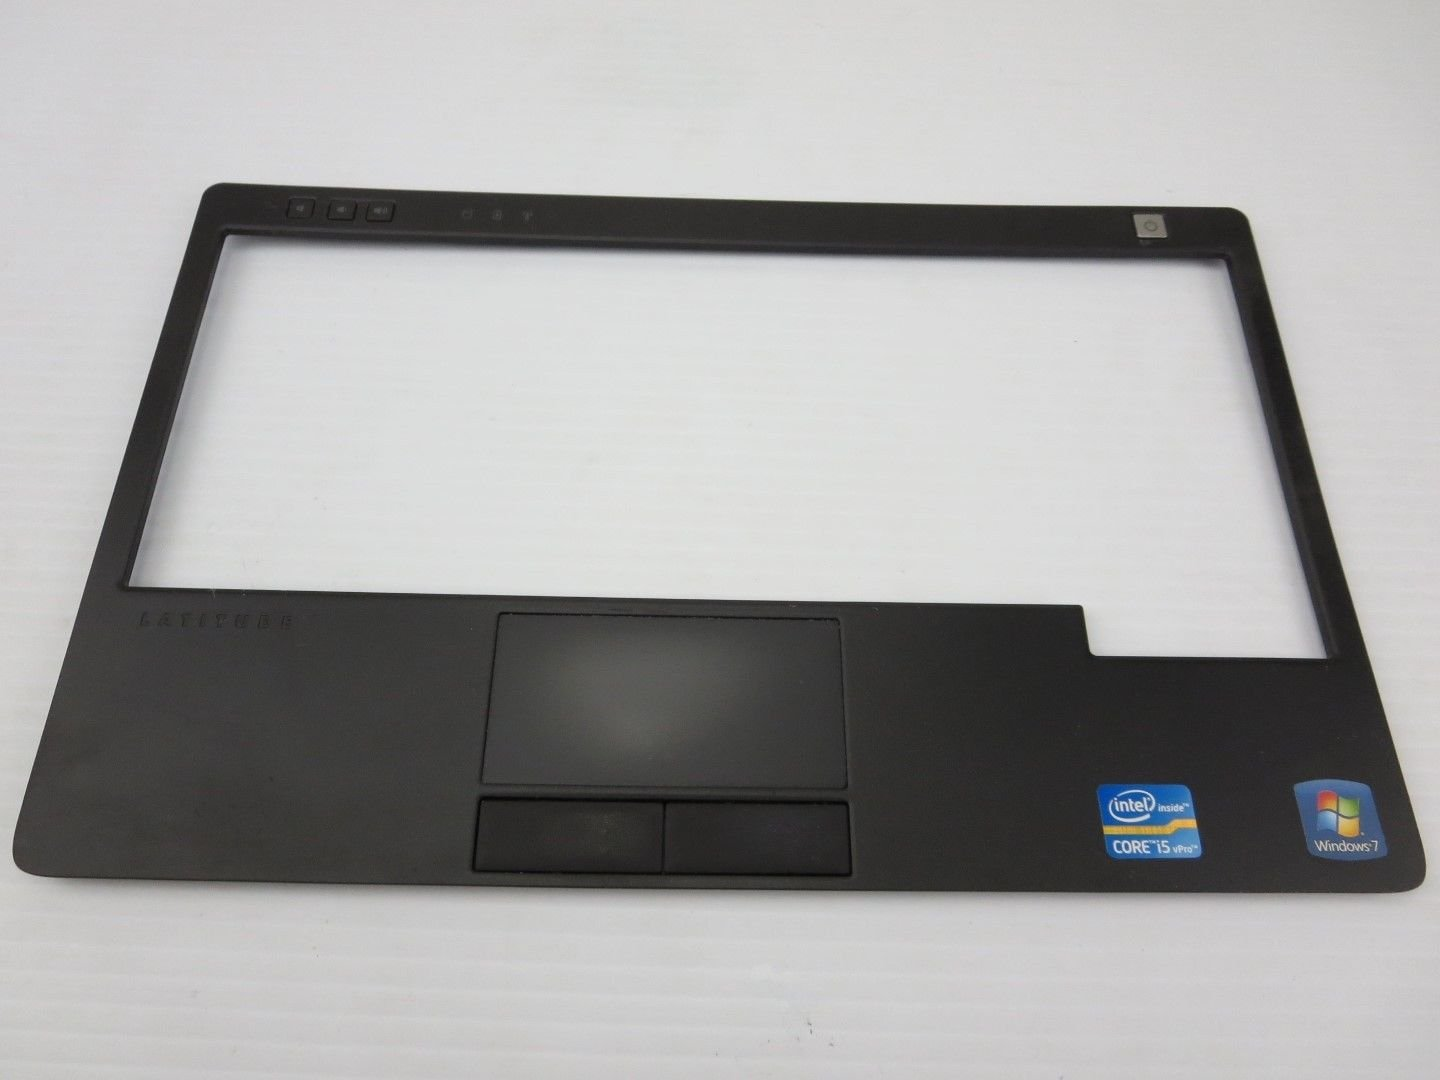 New OEM Dell Latitude C600 C610 Palmrest Touch Pad With Mouse Buttons 1H821